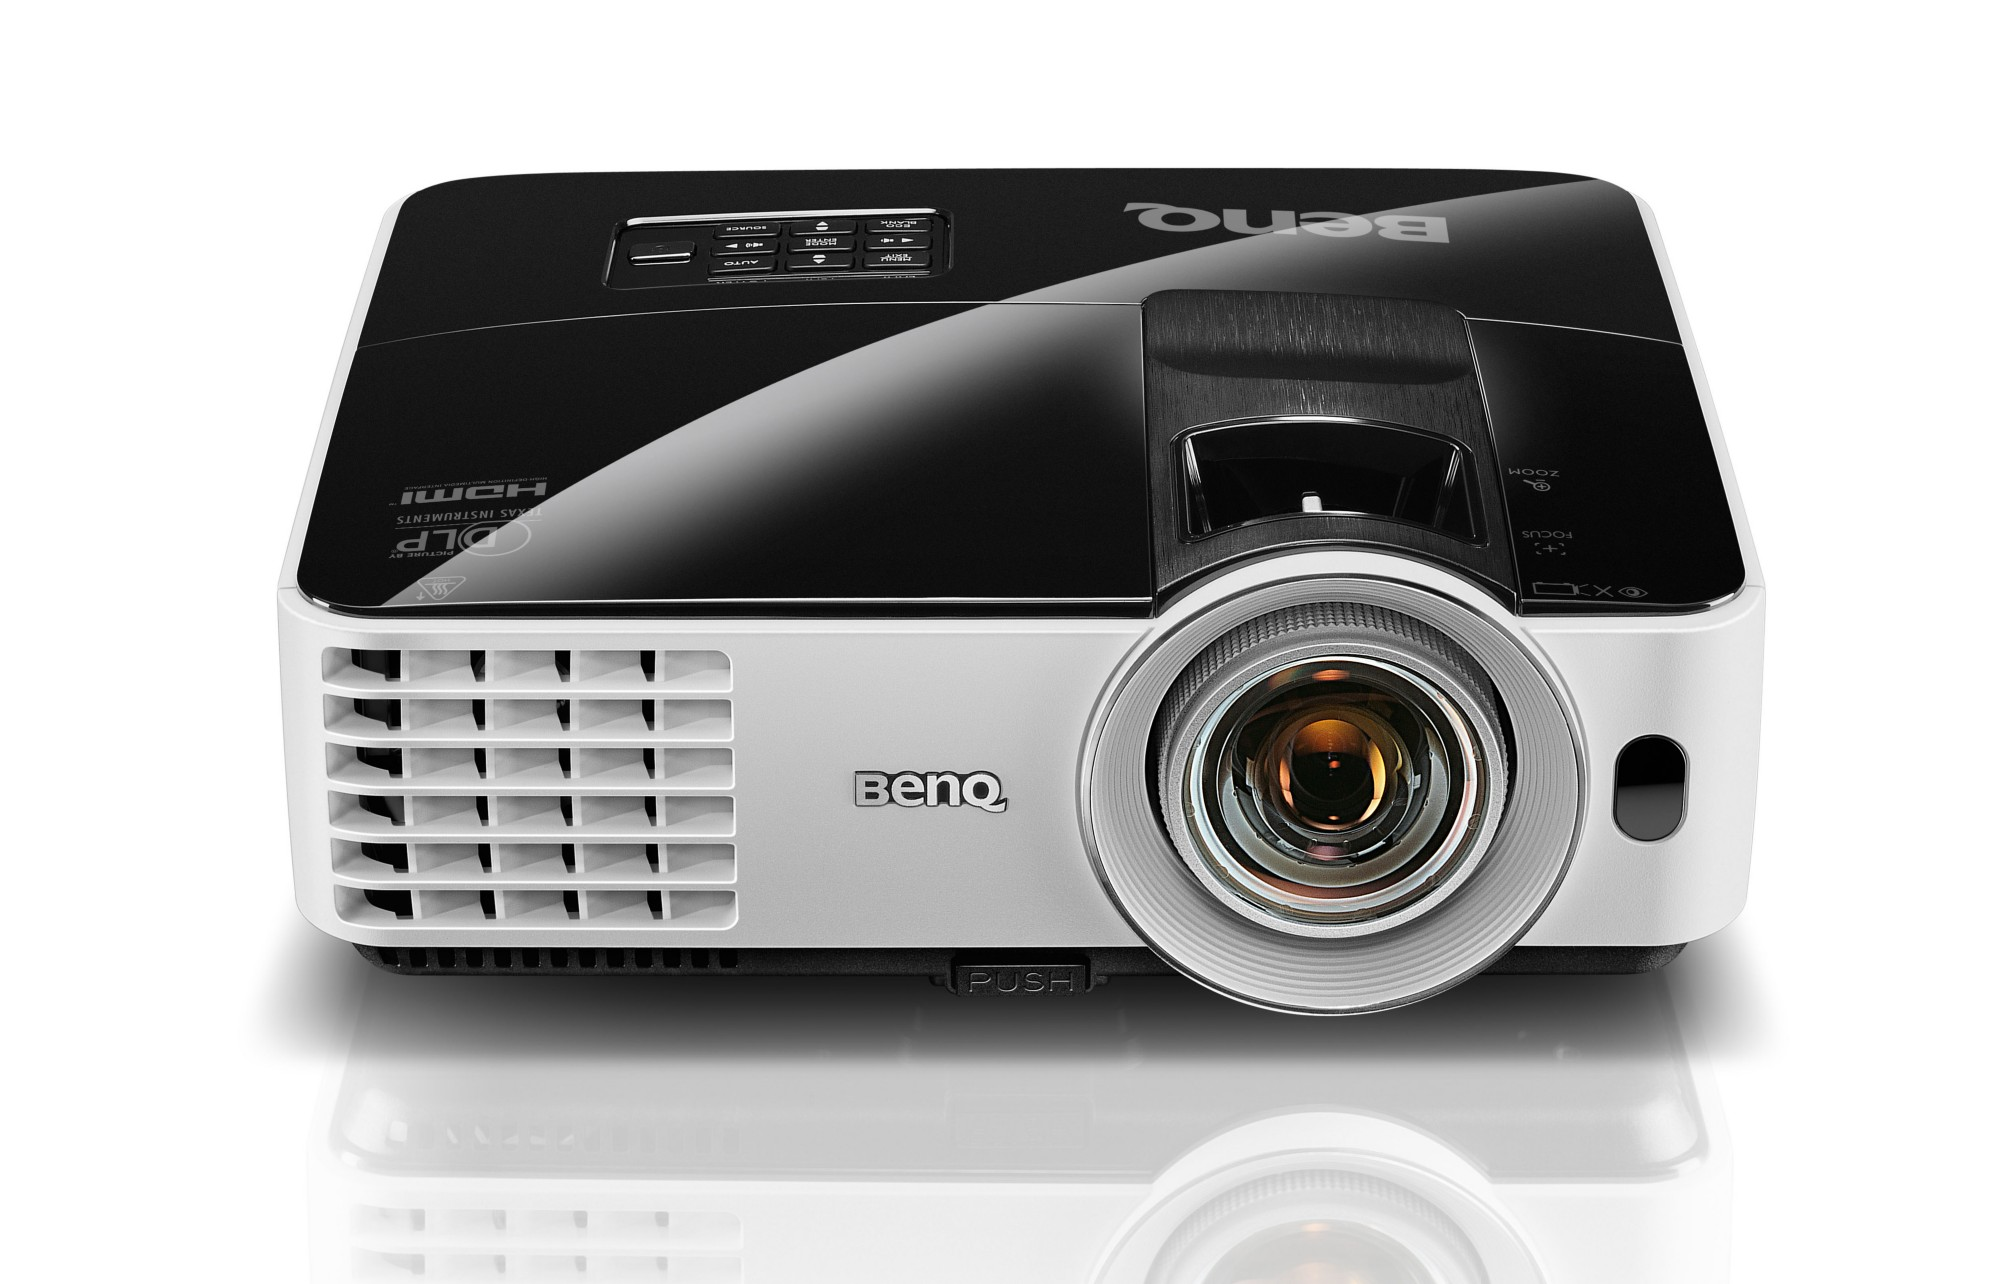 BENQ MX631ST DESKTOP PROJECTOR 3200ANSI LUMENS DLP WXGA (1280X800) 3D BLACK,WHITE DATA